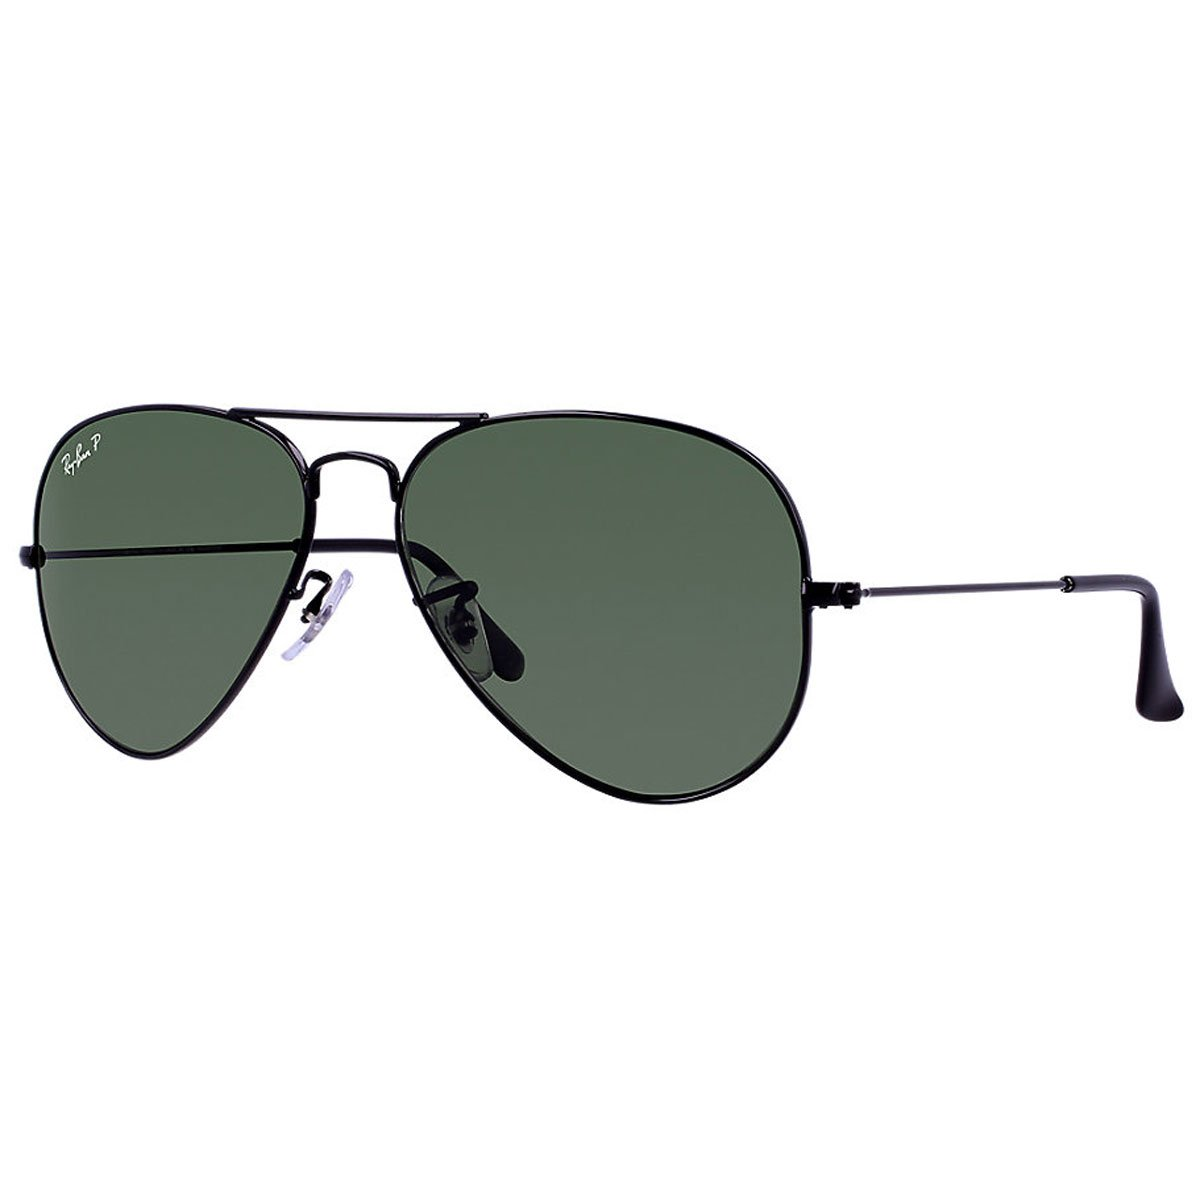 Amazon.com: Ray-Ban RB3025 Aviator Polarized Sunglasses ...